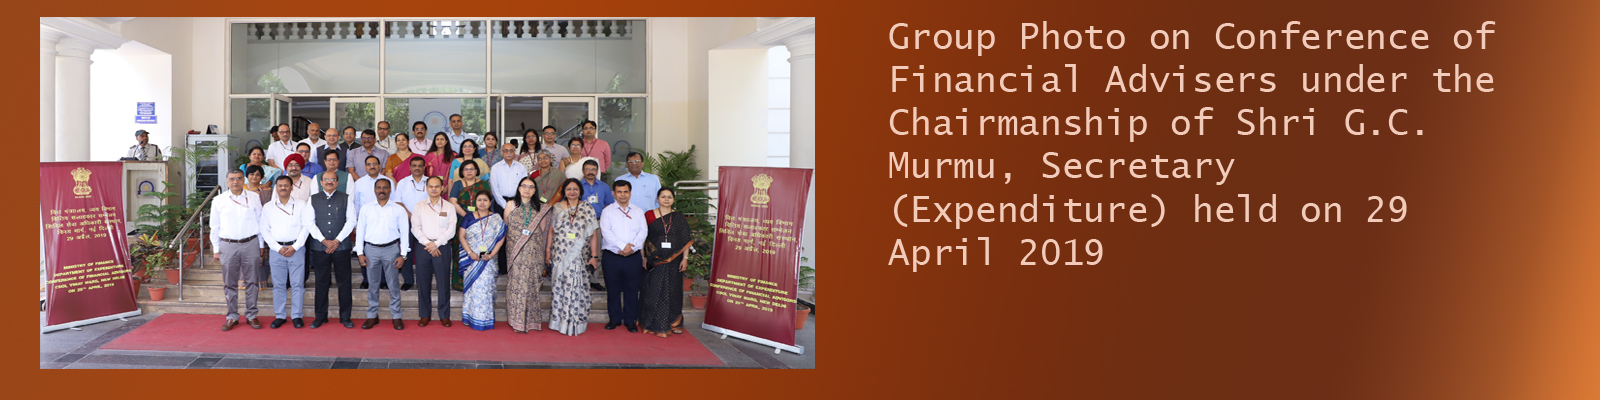 Conference of Financial Advisers under the Chairmanship of Shri G C Murmu, Secretary Expenditure